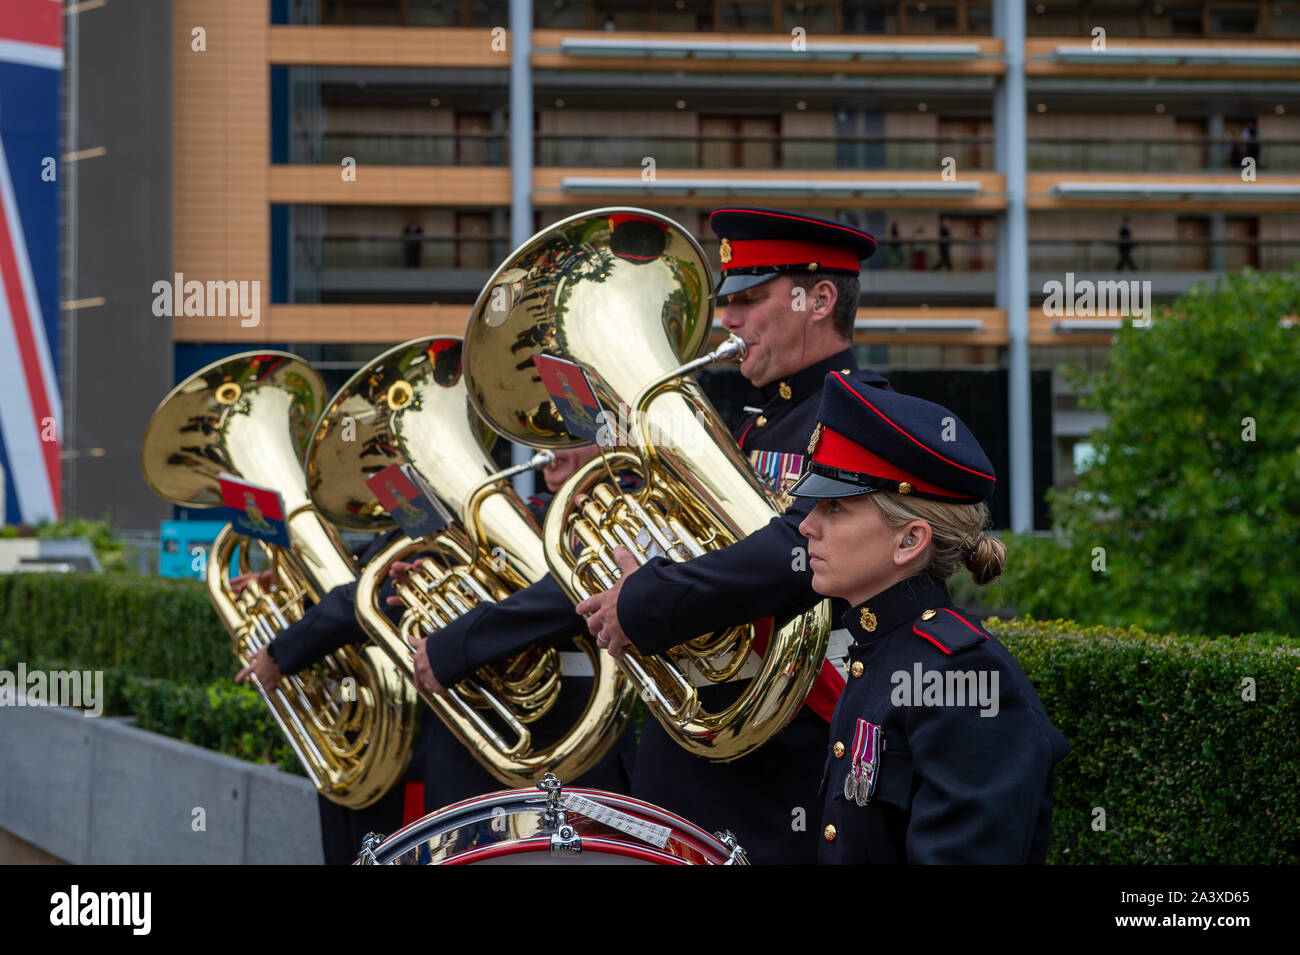 Autumn Racing Weekend & Ascot Beer Festival, Ascot Racecourse, Ascot, Berkshire, UK. 5th October, 2019. Tidworth Army Band play music for racegoers. Credit: Maureen McLean/Alamy Stock Photo